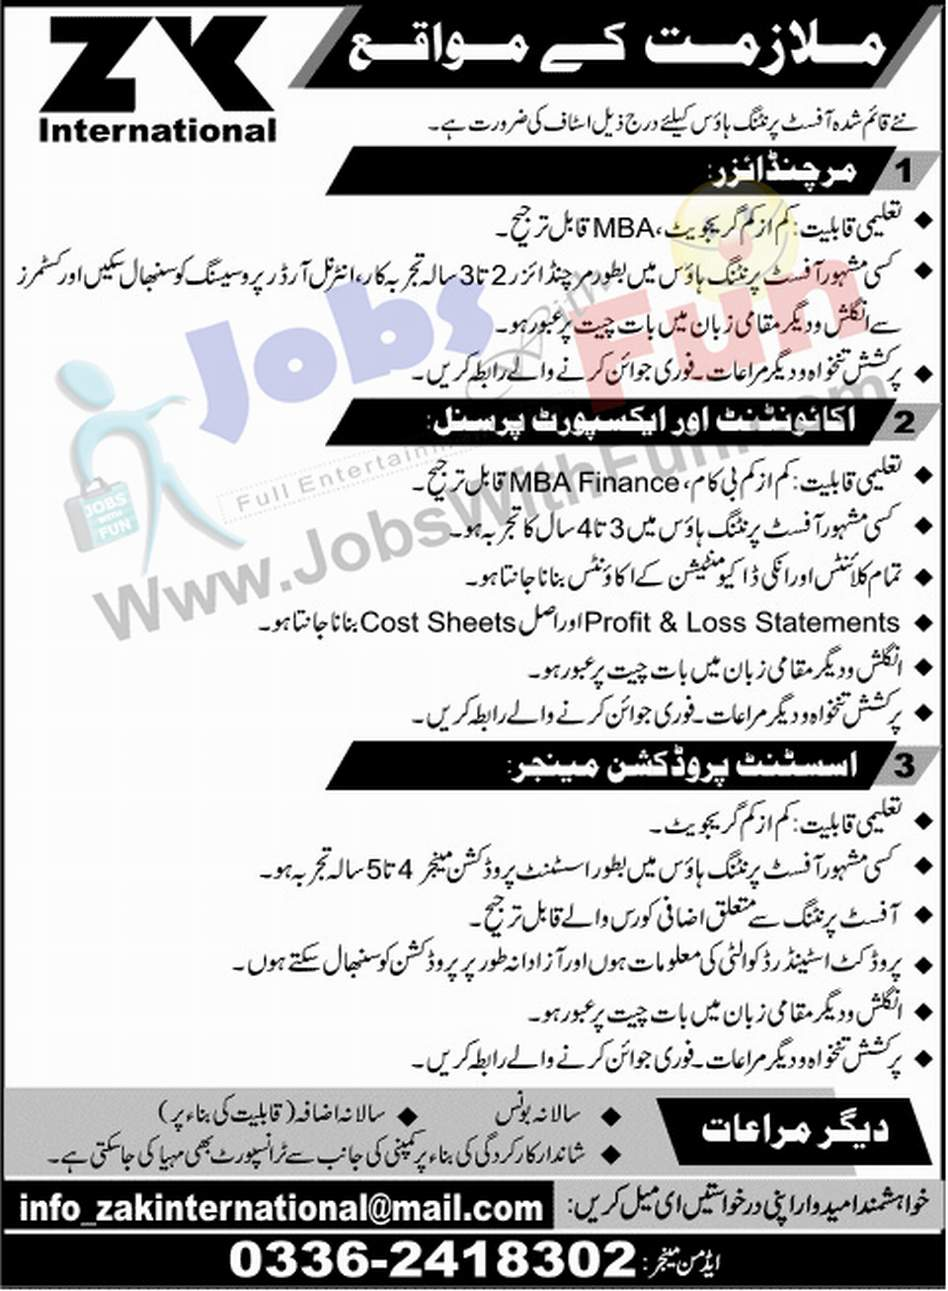 Career Opportunities In ZAK International offset Printing